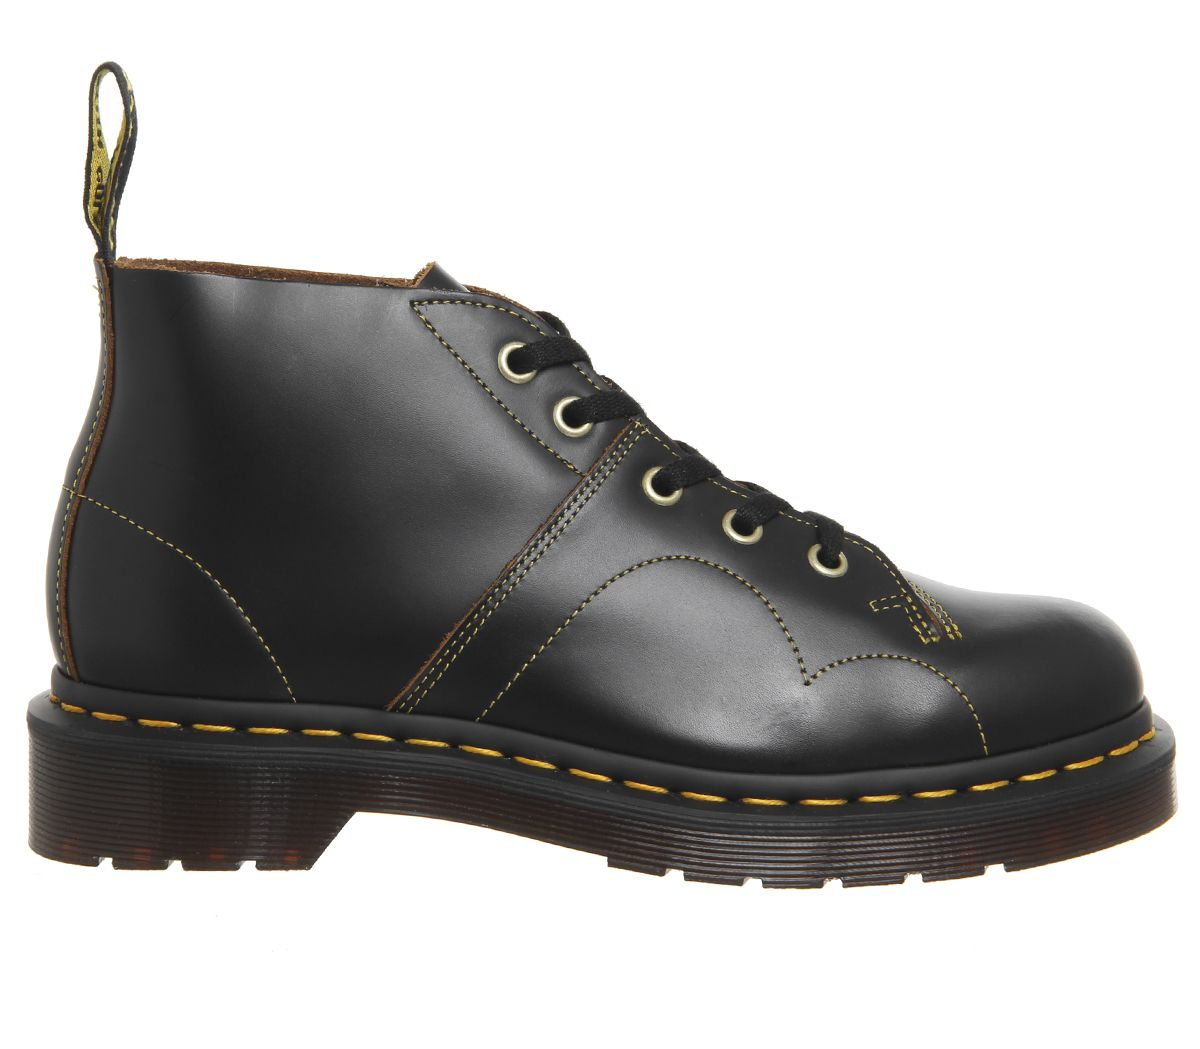 4e1edade67105 Sentinel Womens Dr. Martens Church 5 Eye Monkey Boots Black Vintage Smooth  Boots